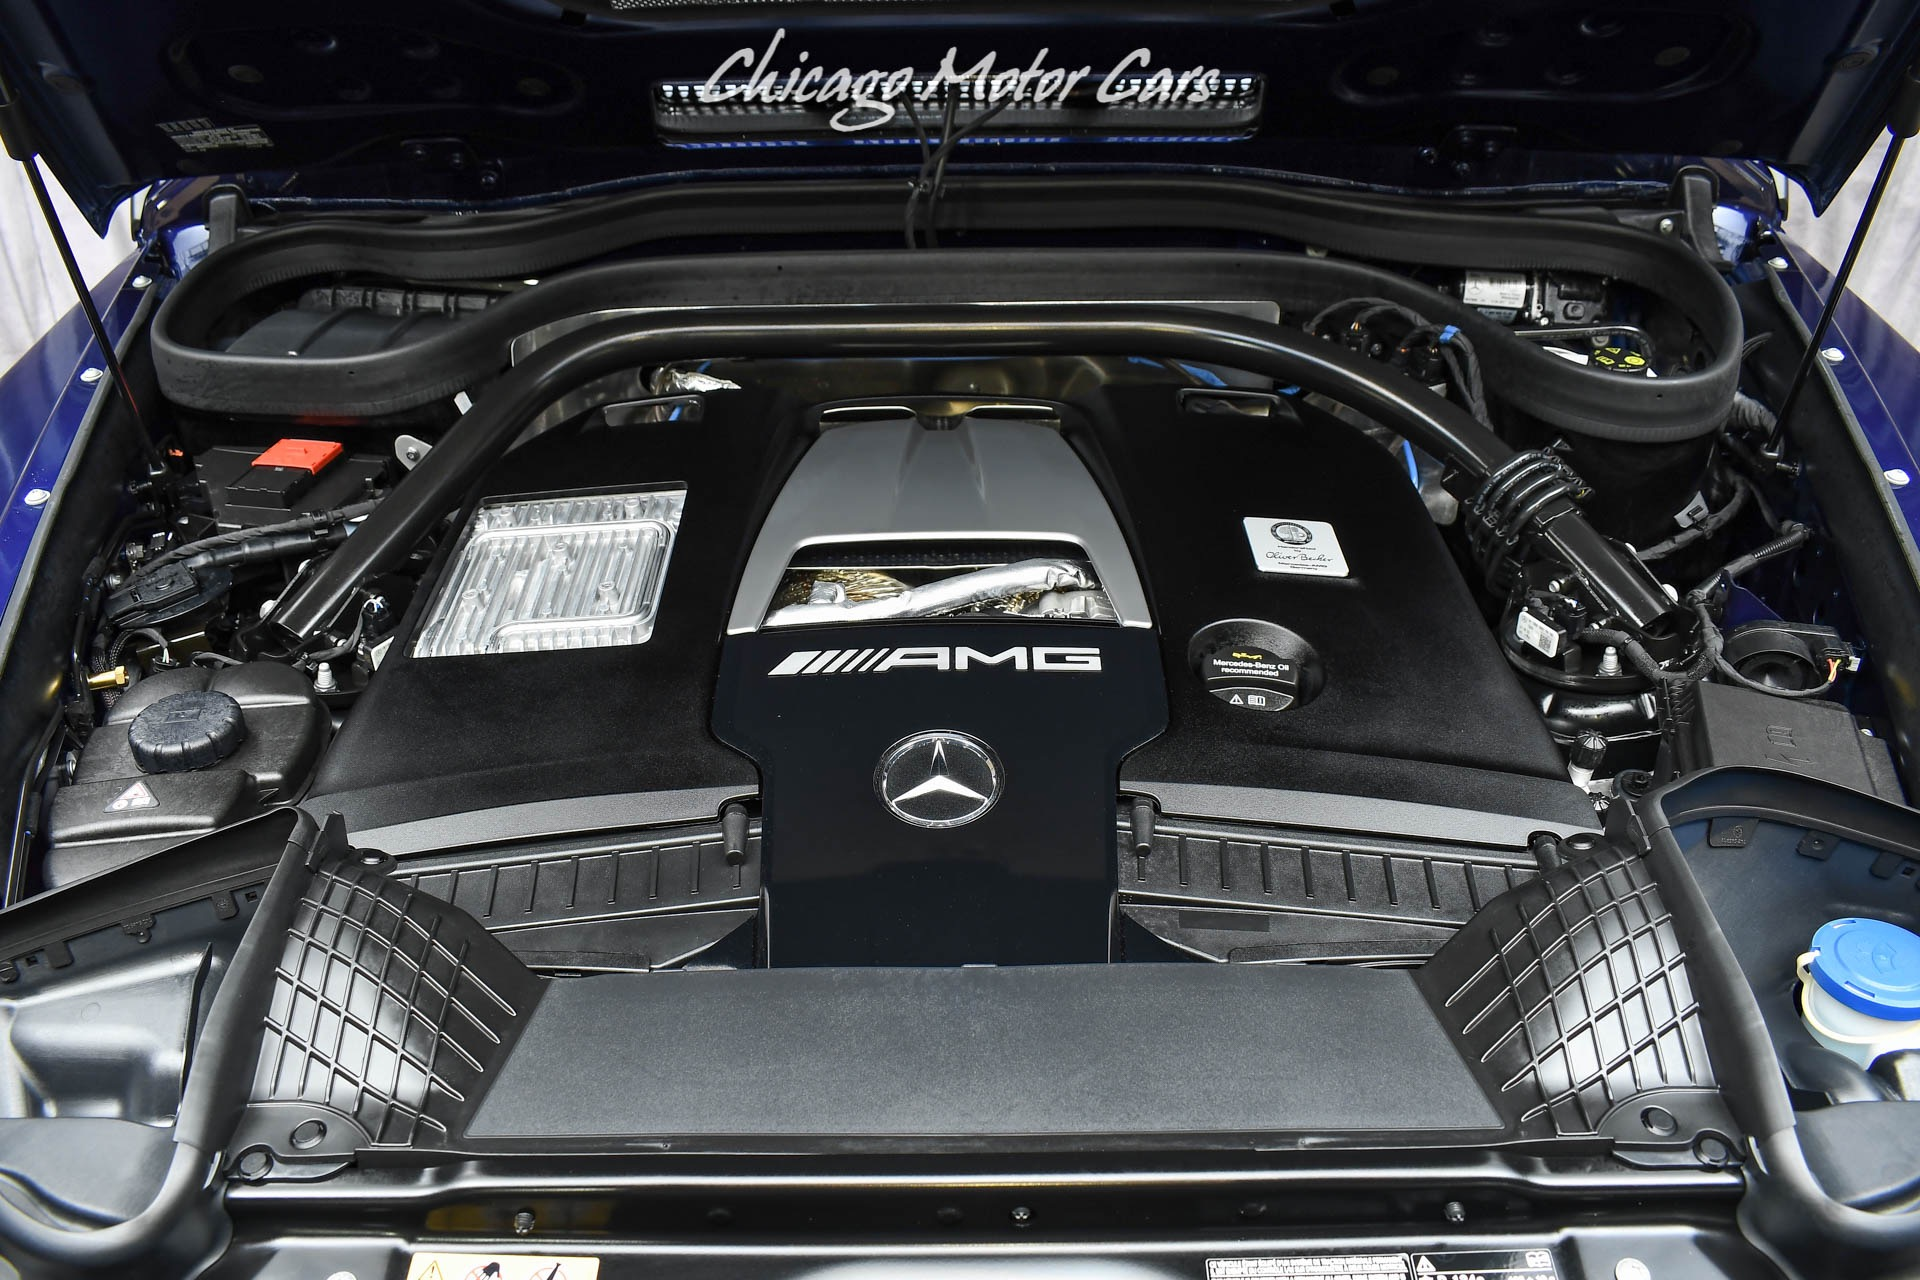 Used-2021-Mercedes-Benz-G63-AMG-SUV-RARE-Mystic-Blue-Exclusive-Interior-AMG-Carbon-Fiber-LOADED